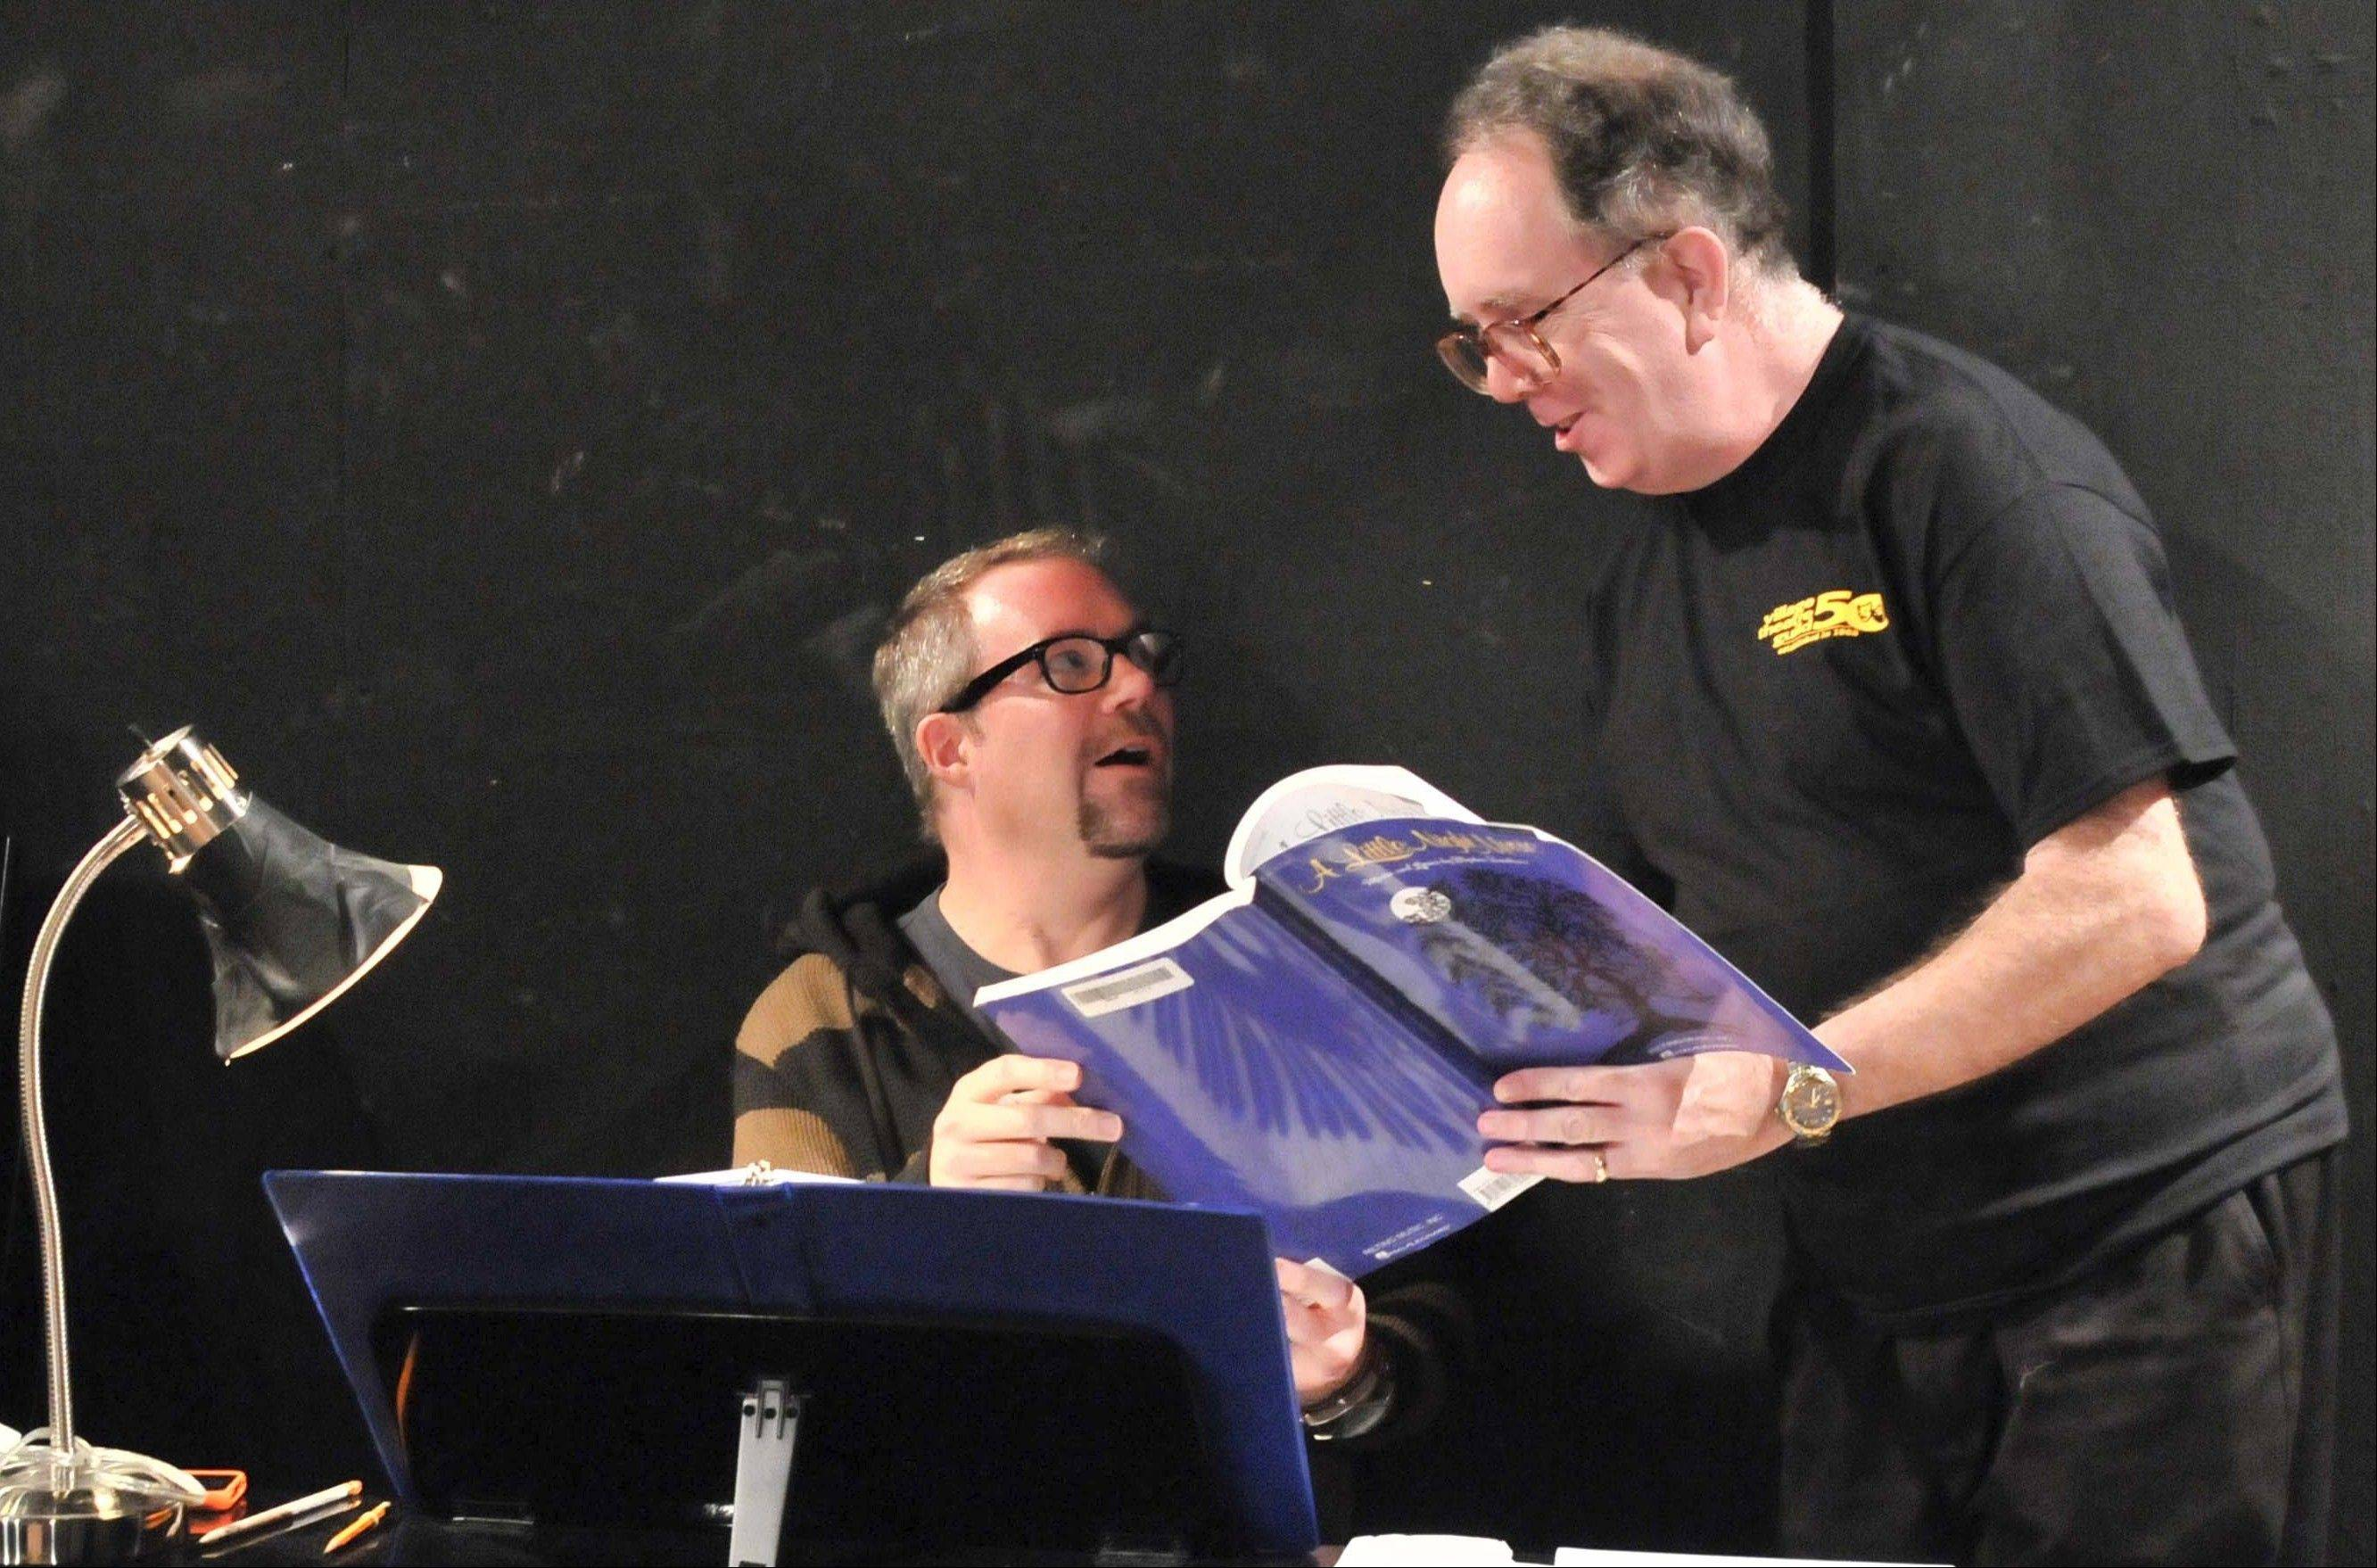 Music Director Doug Orlyk, left, and Director Craig Gustafson collaborate on the interpretation of some of Sondheim�s passages in �A Little Night Music� at the Village Theatre Guild, opening Friday, Oct. 19.